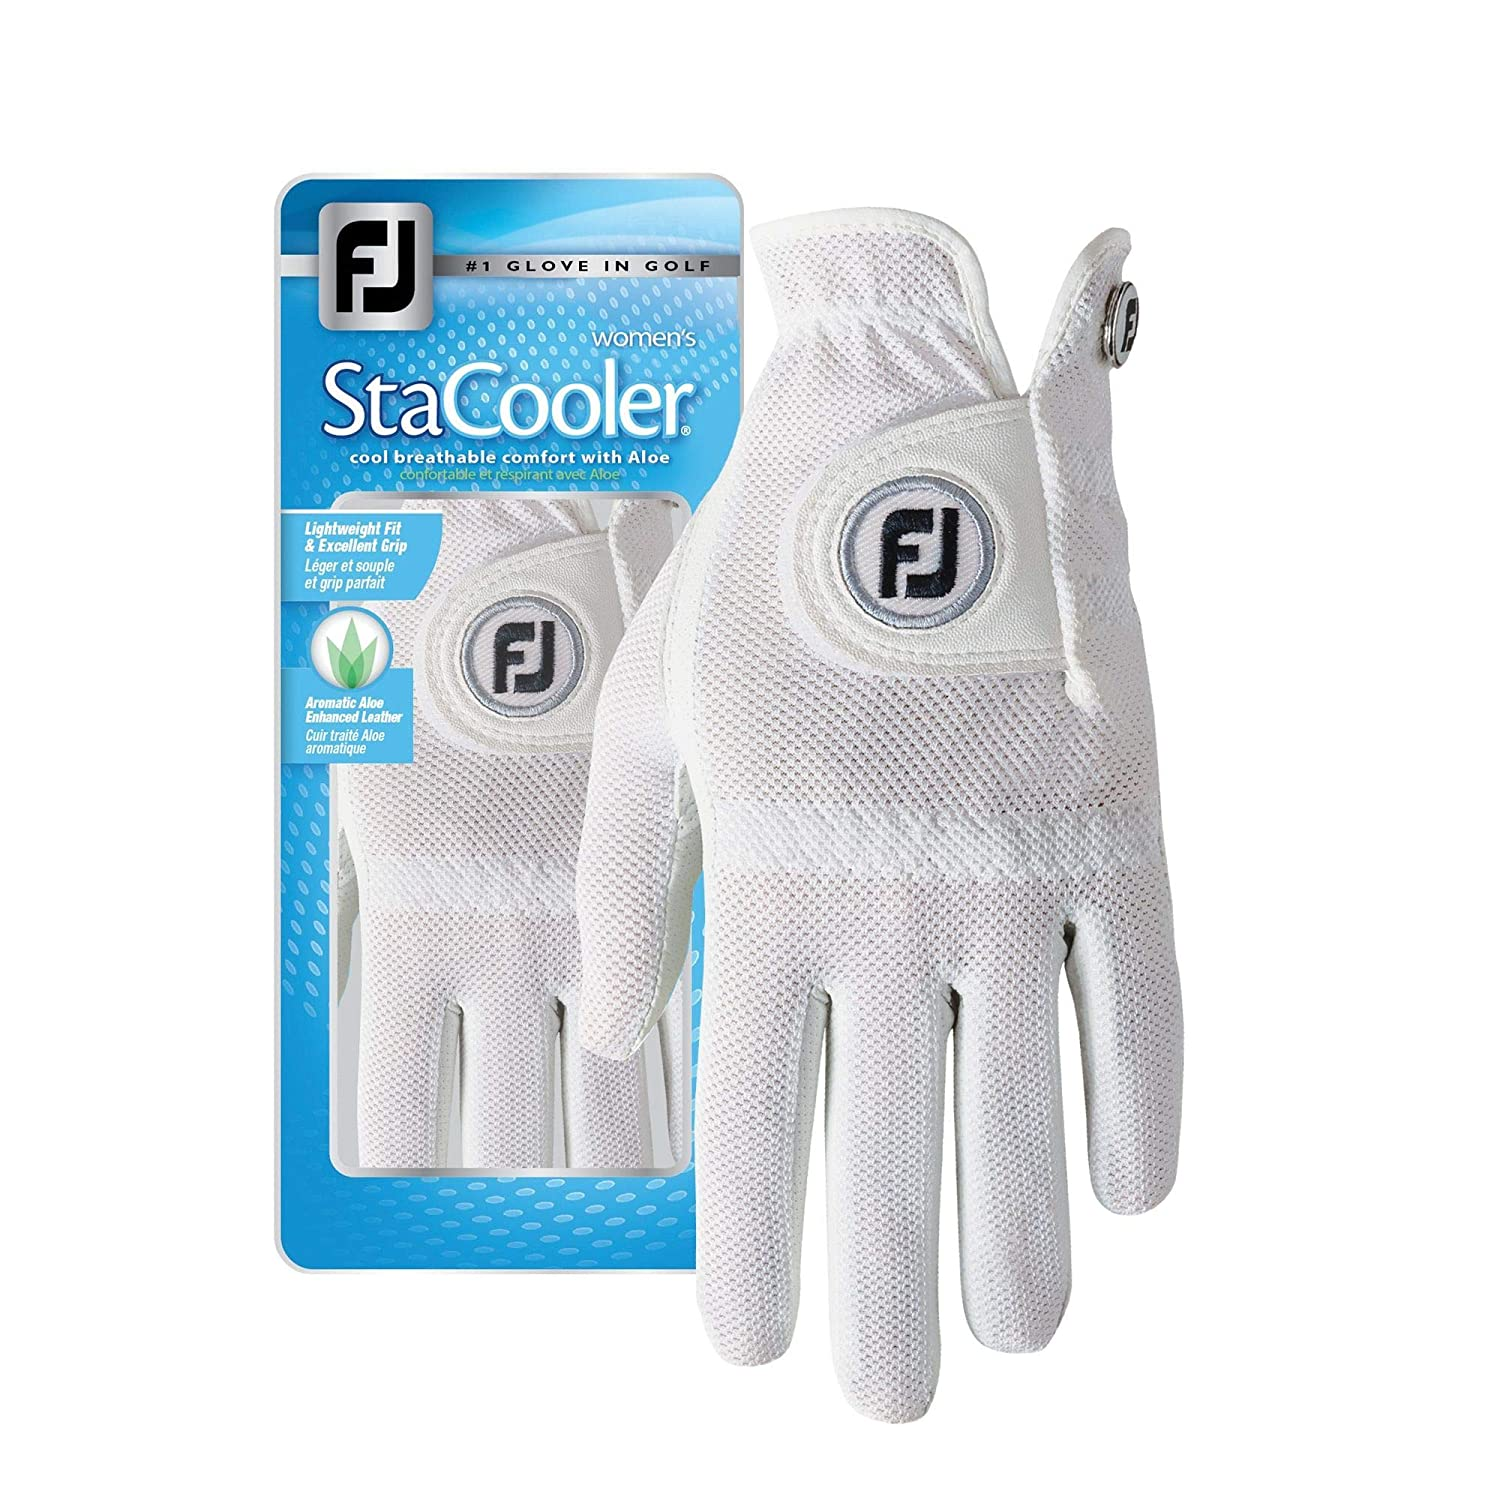 FootJoy StaCooler Womens Golf Glove Right Large ( for the Right Hand )   B01GUII6O2